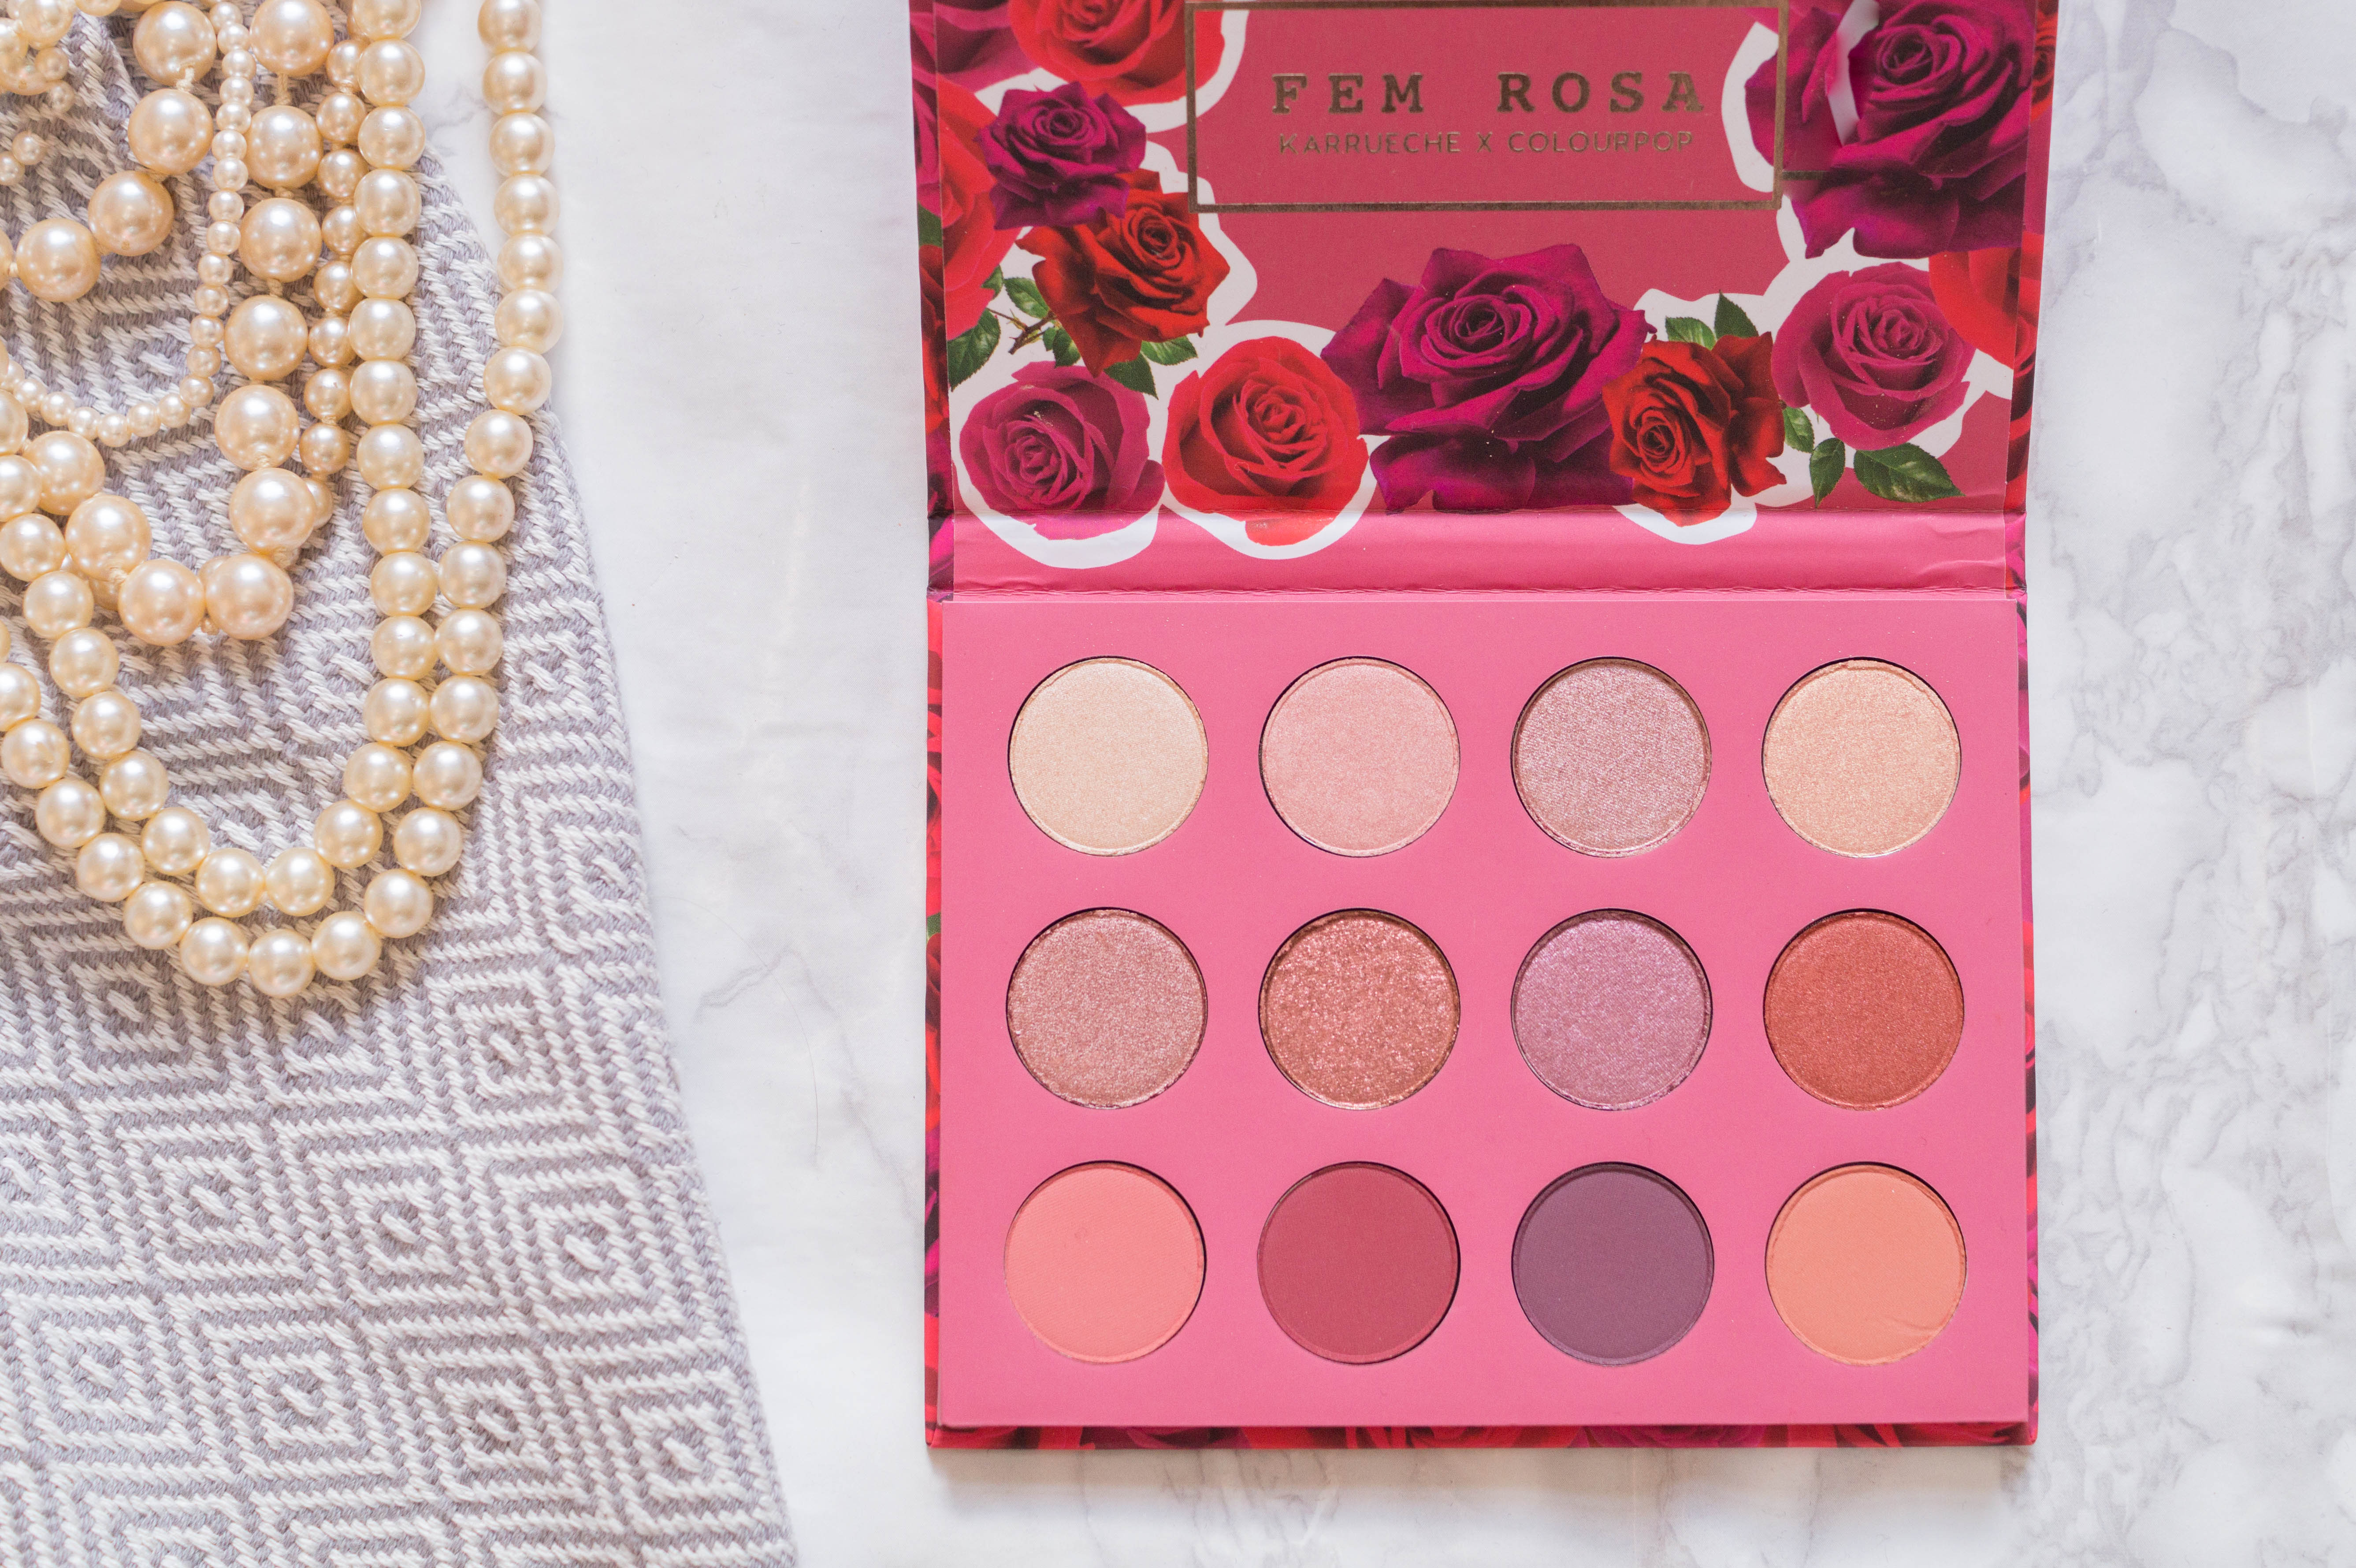 colourpop haul review swatches flatlay colourpop eyeshadows fem rosa she palette